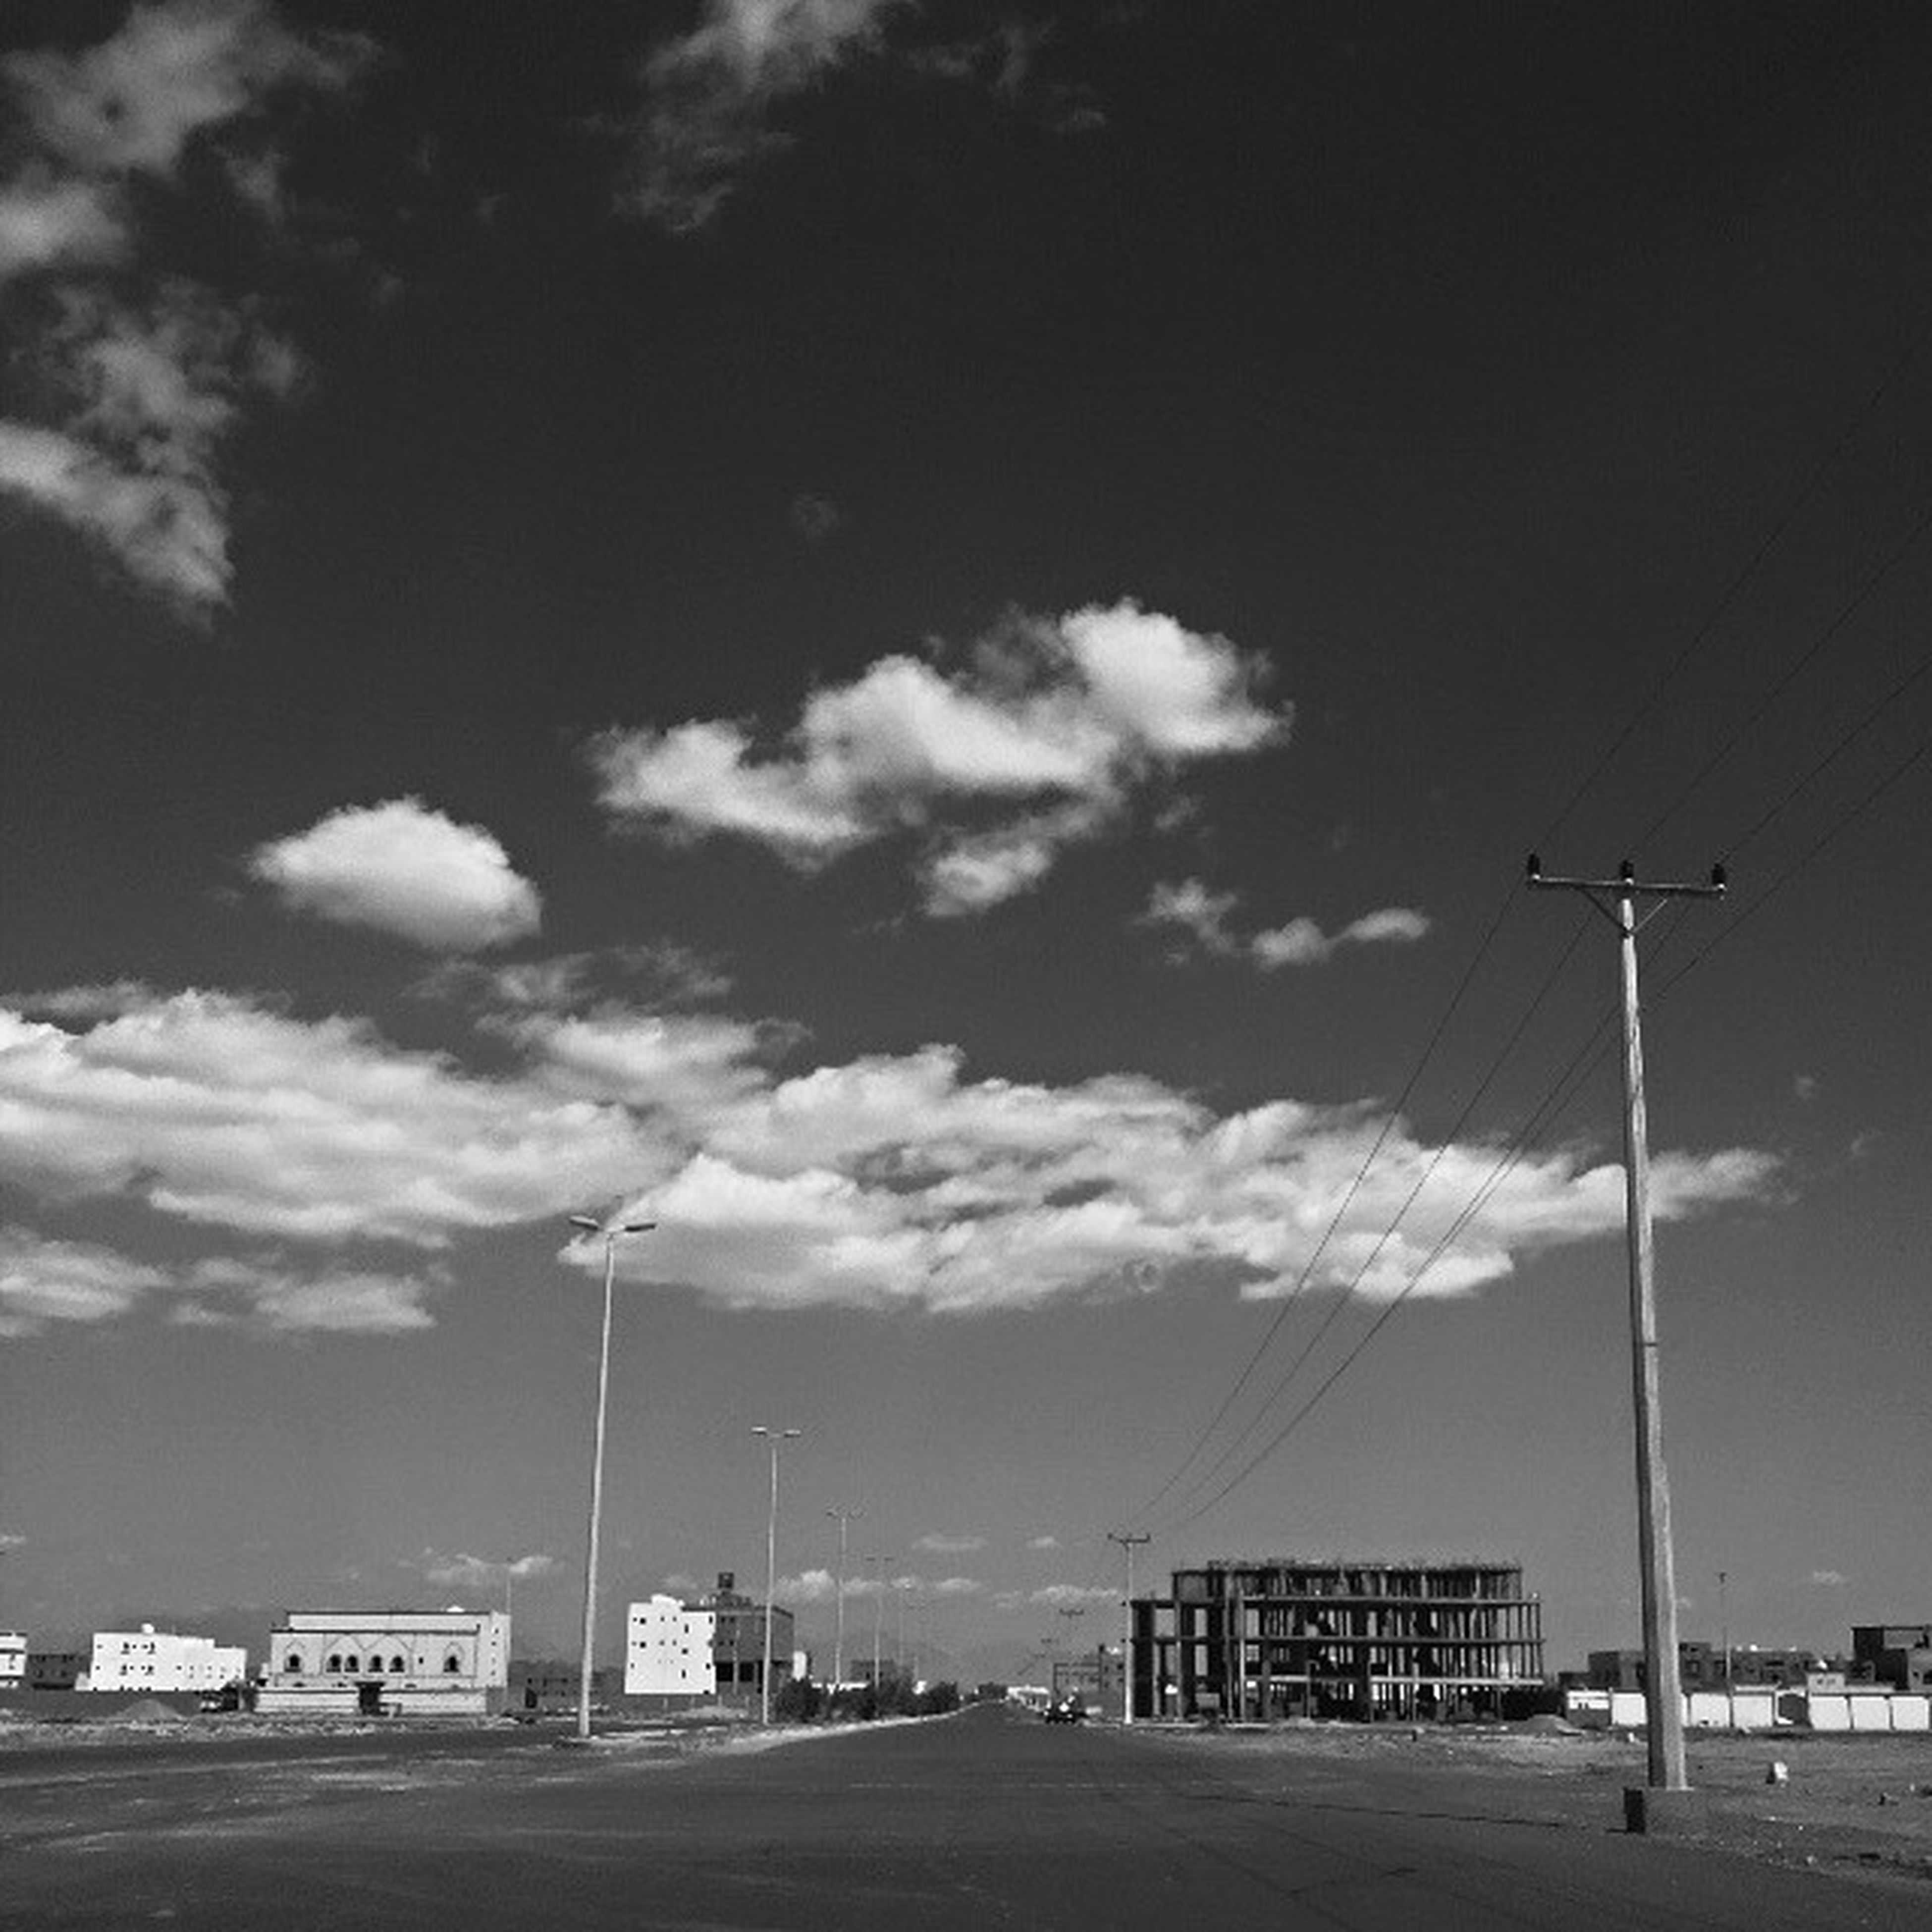 sky, transportation, street light, car, mode of transport, cloud - sky, road, street, cloud, low angle view, land vehicle, electricity pylon, pole, electricity, power line, day, cloudy, outdoors, no people, fuel and power generation